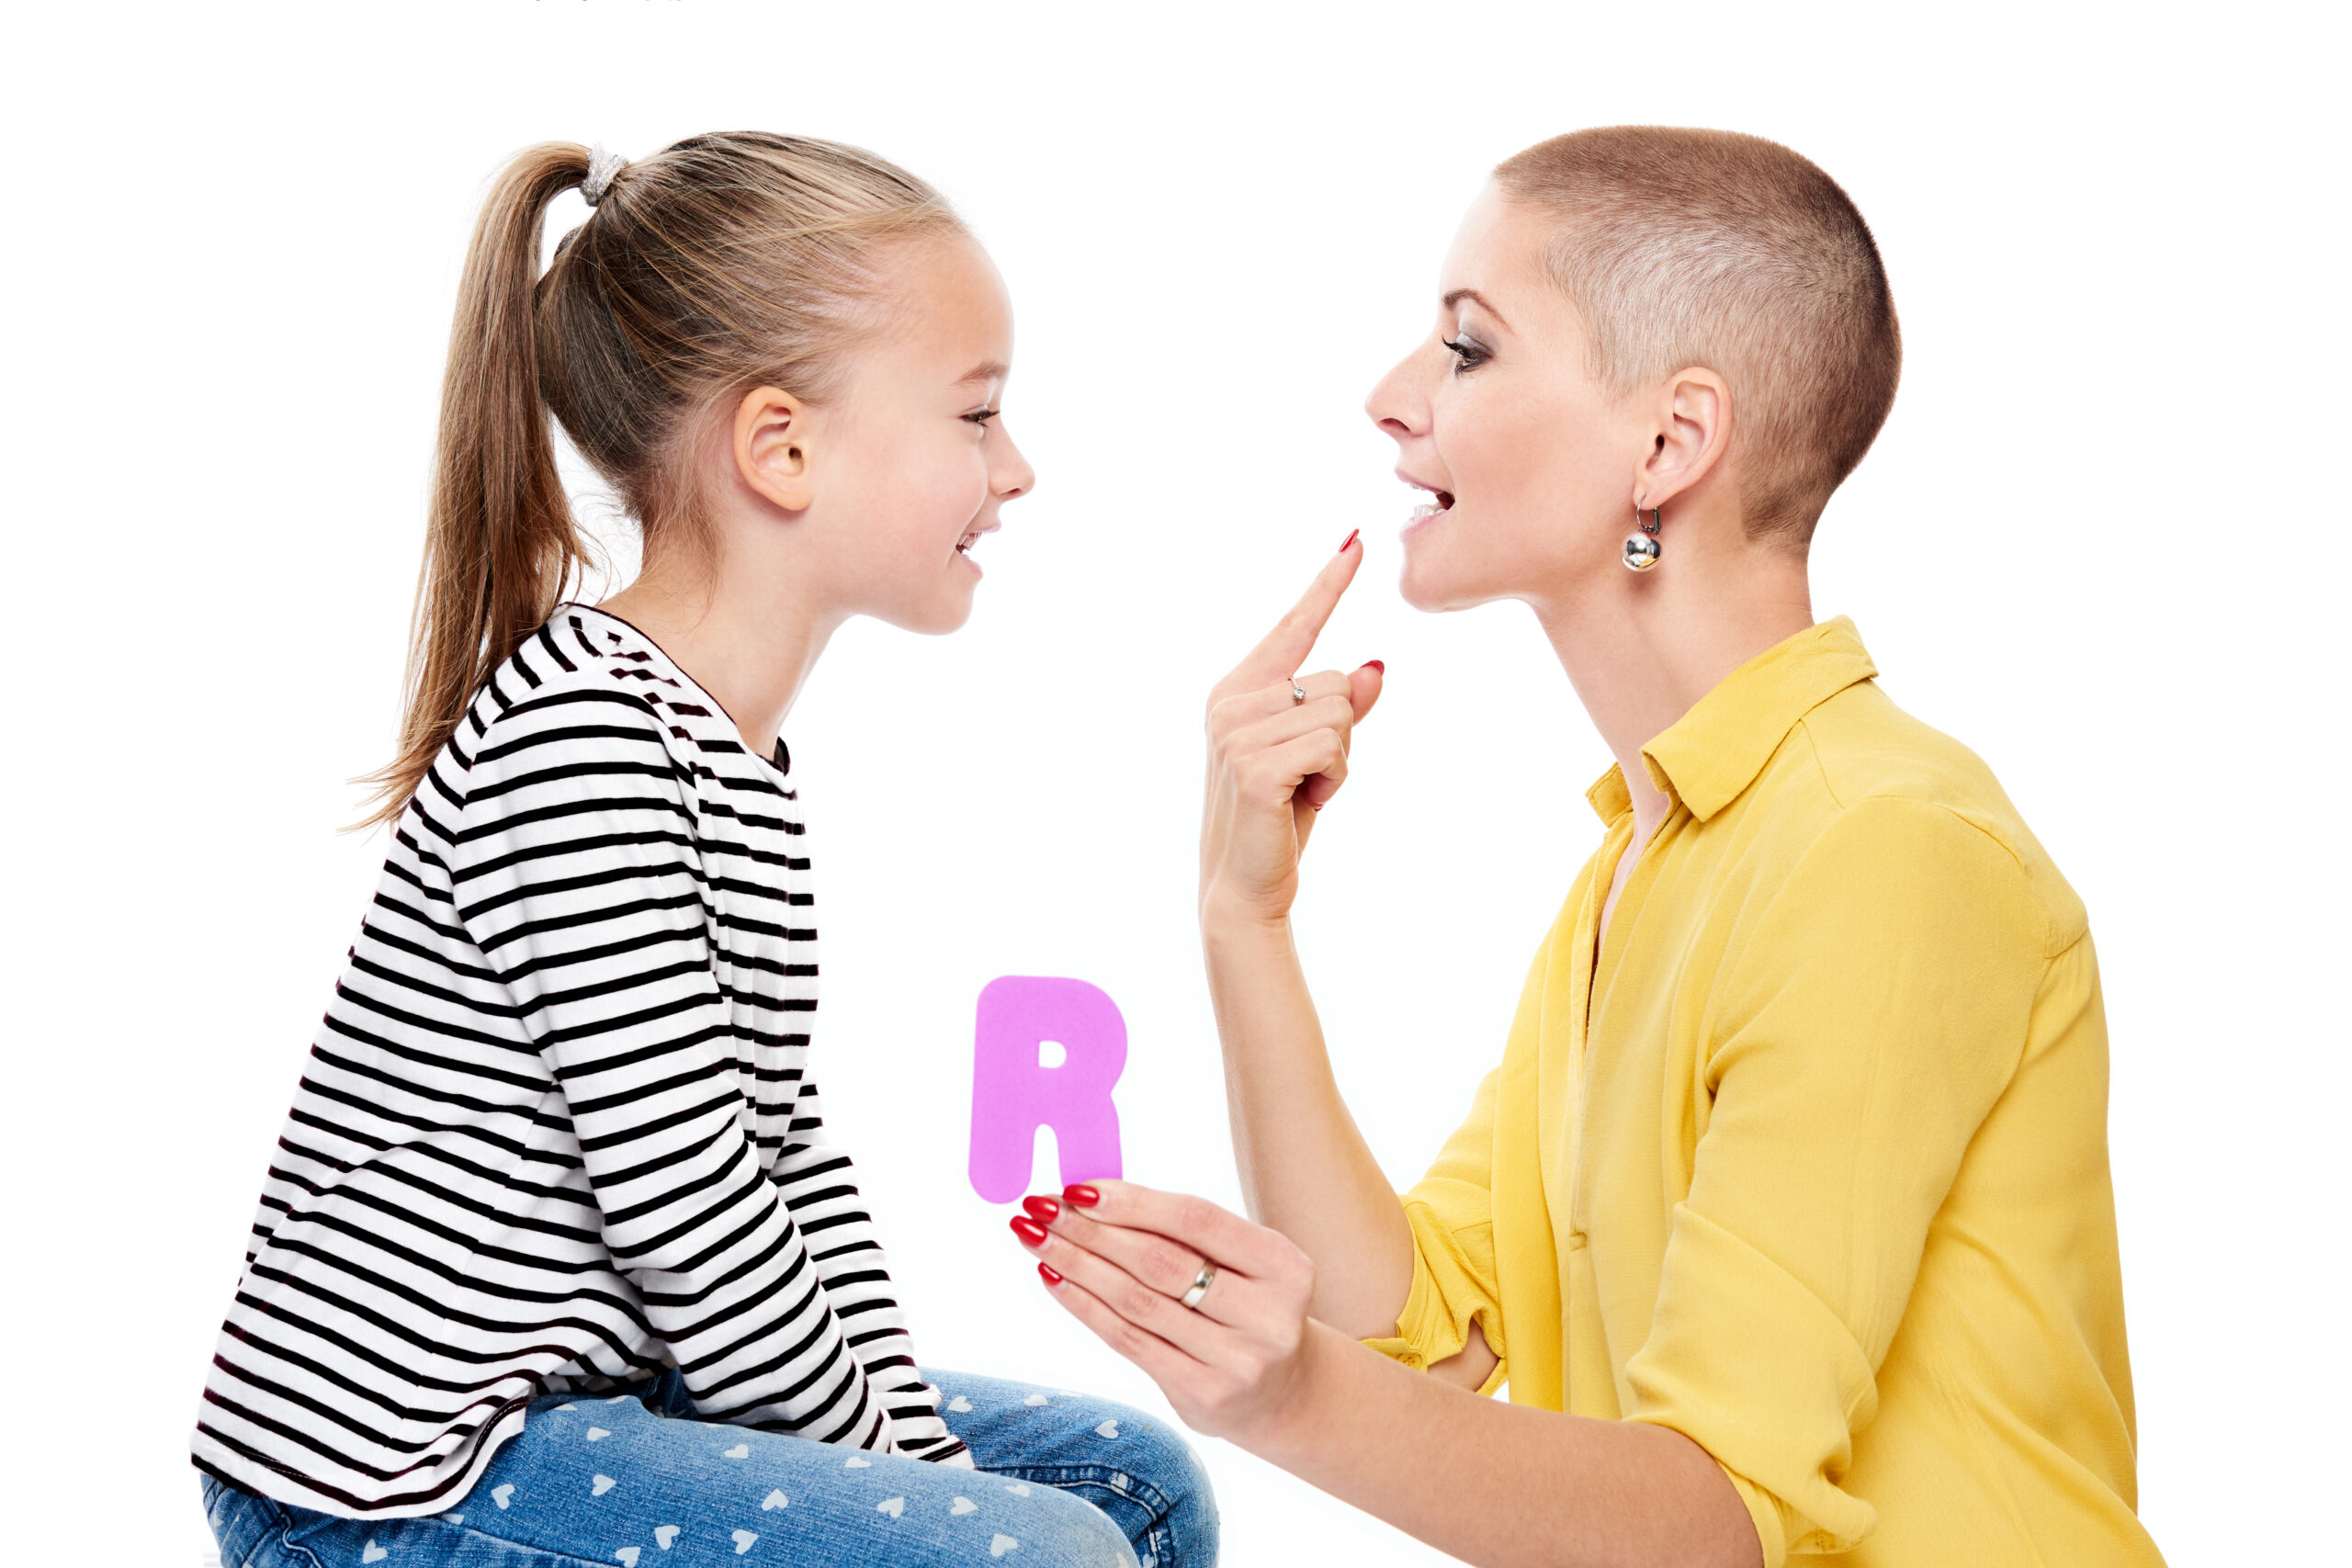 """A speech therapist holds up a letter R while pointing to their mouth and forming the """"r"""" sound. A child watches them closely and tries to replicate the sound."""